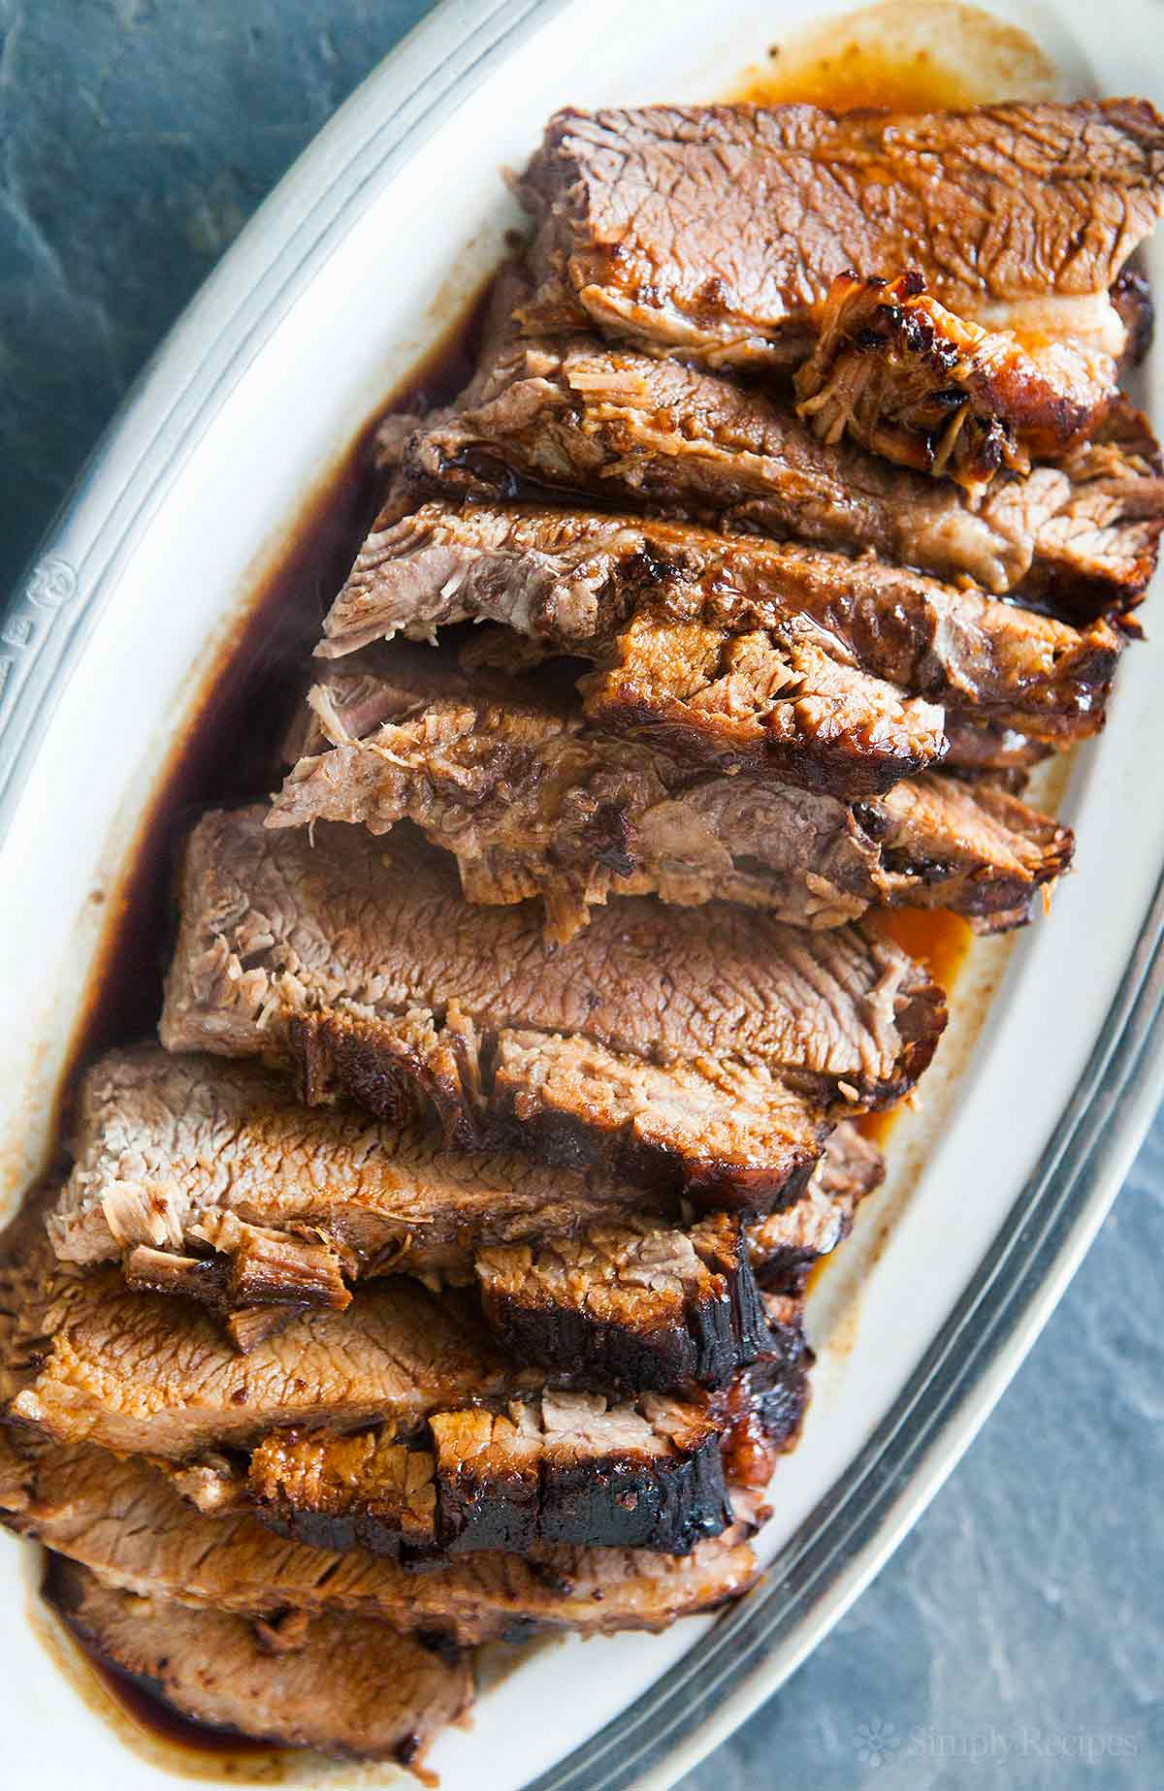 Beef Brisket Easy, Oven-Baked! | SimplyRecipes